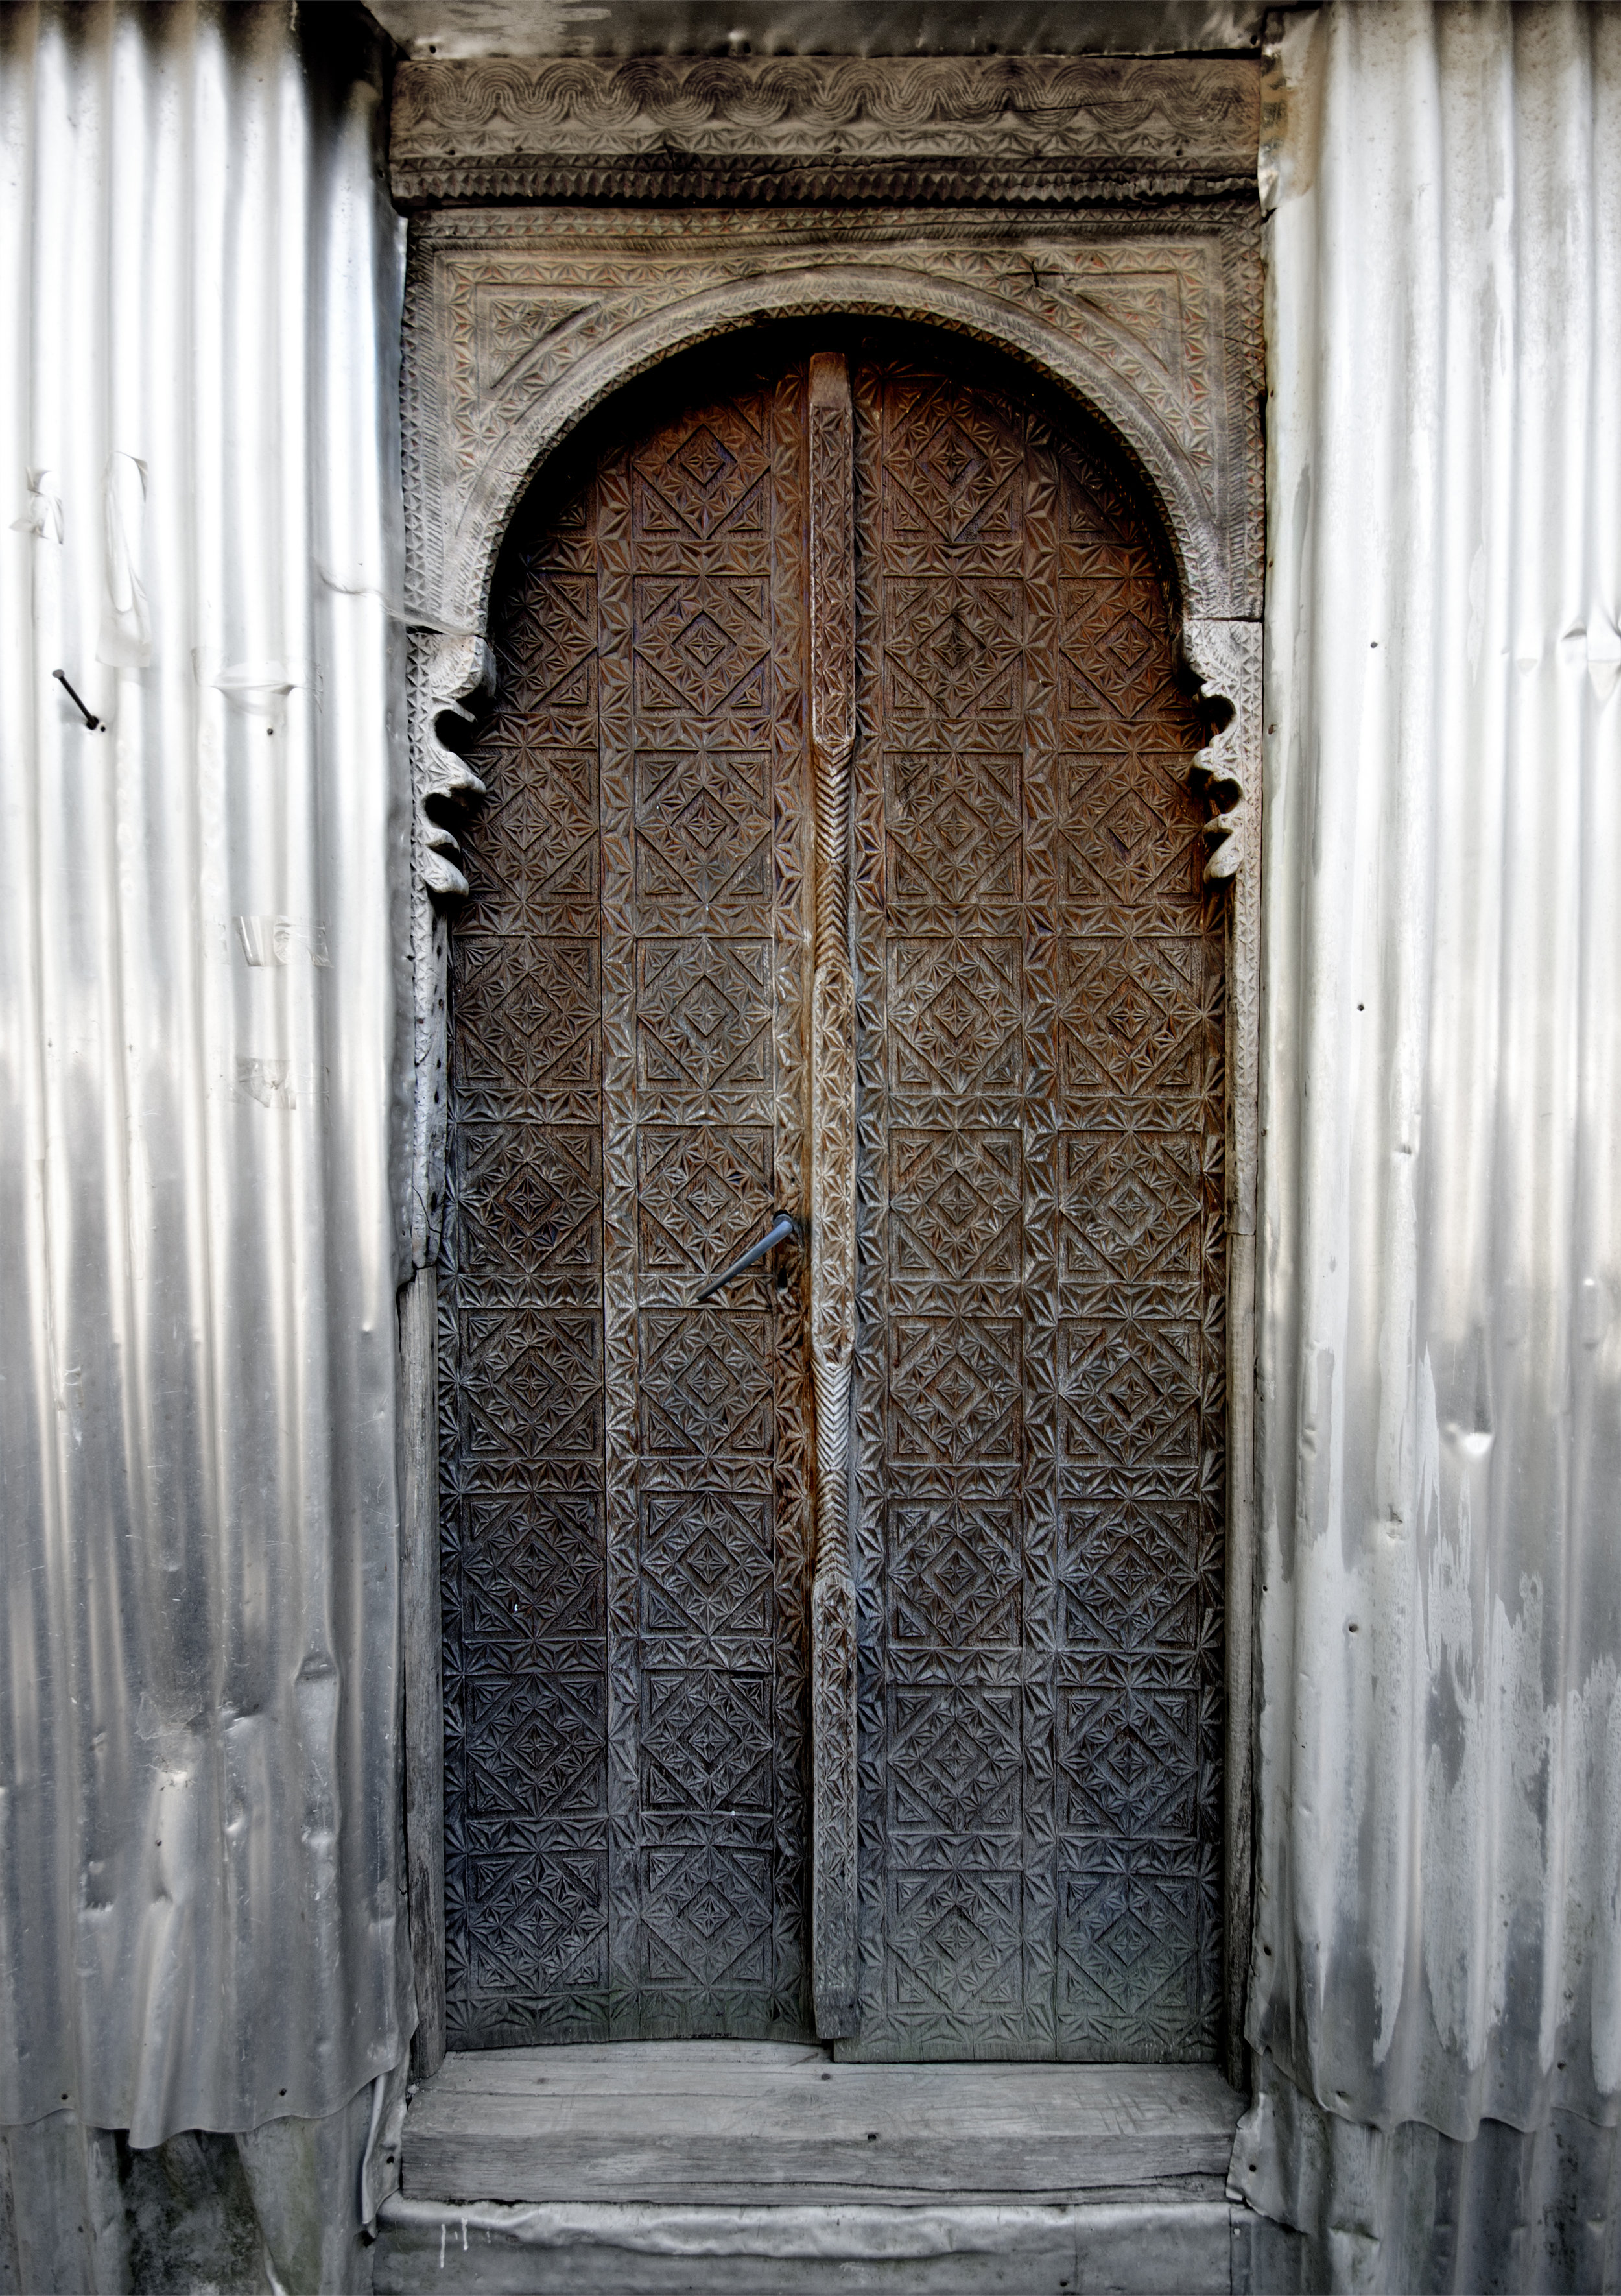 Akho (  ახო)  village mosque door detail © all images copyright Wooden Mosques Project